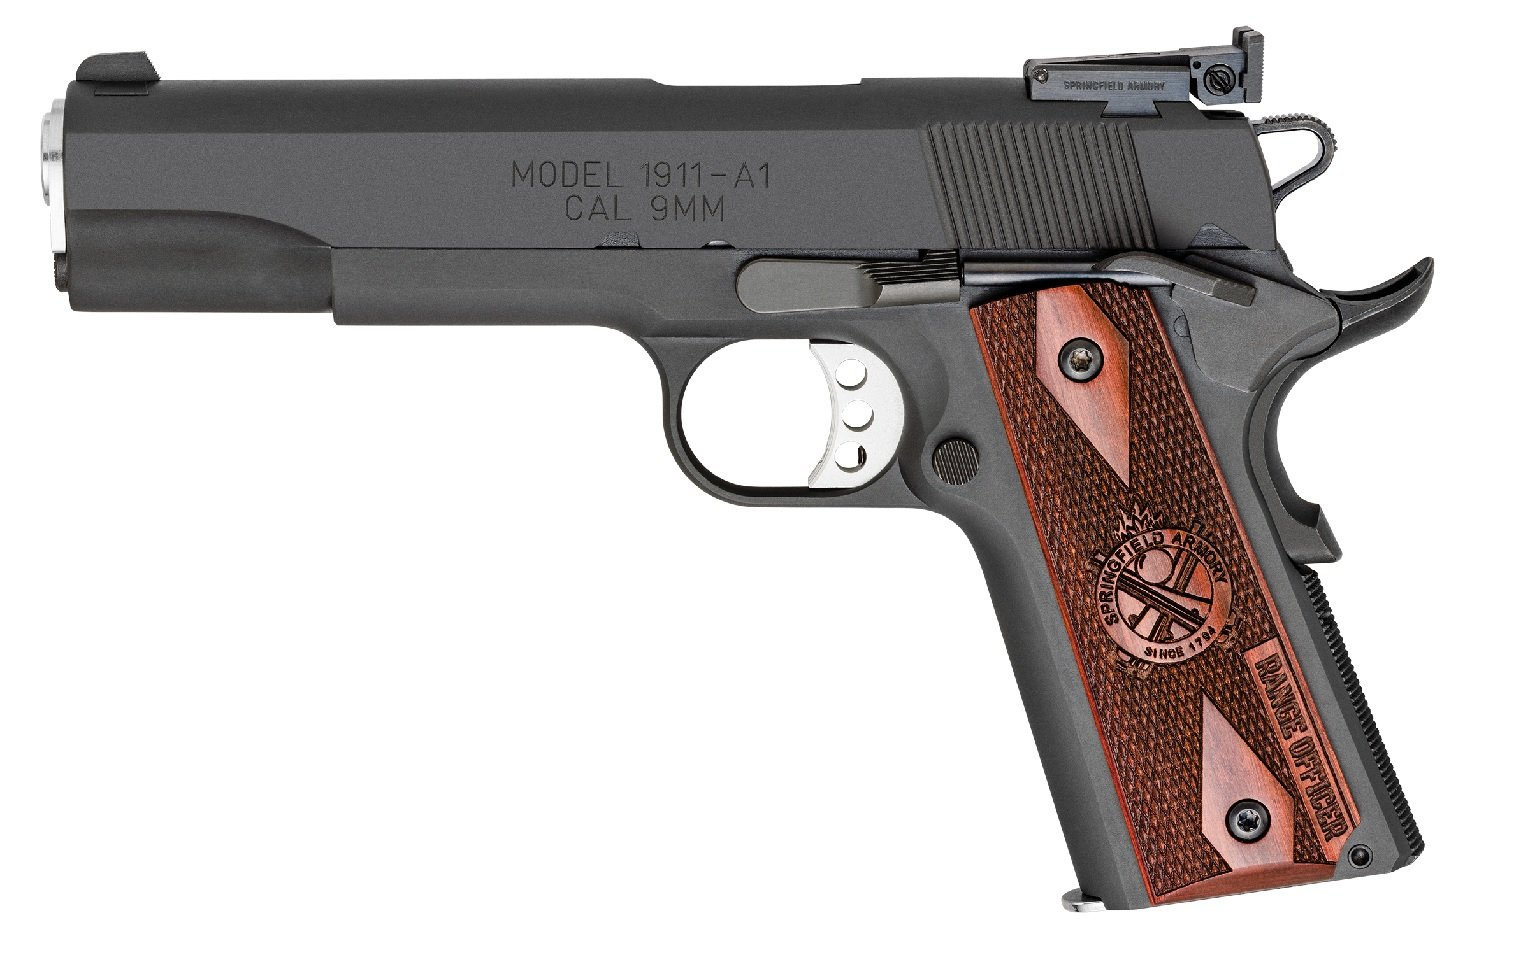 SPRINGFIELD 1911-A1 RANGE OFFICER 9MM 5